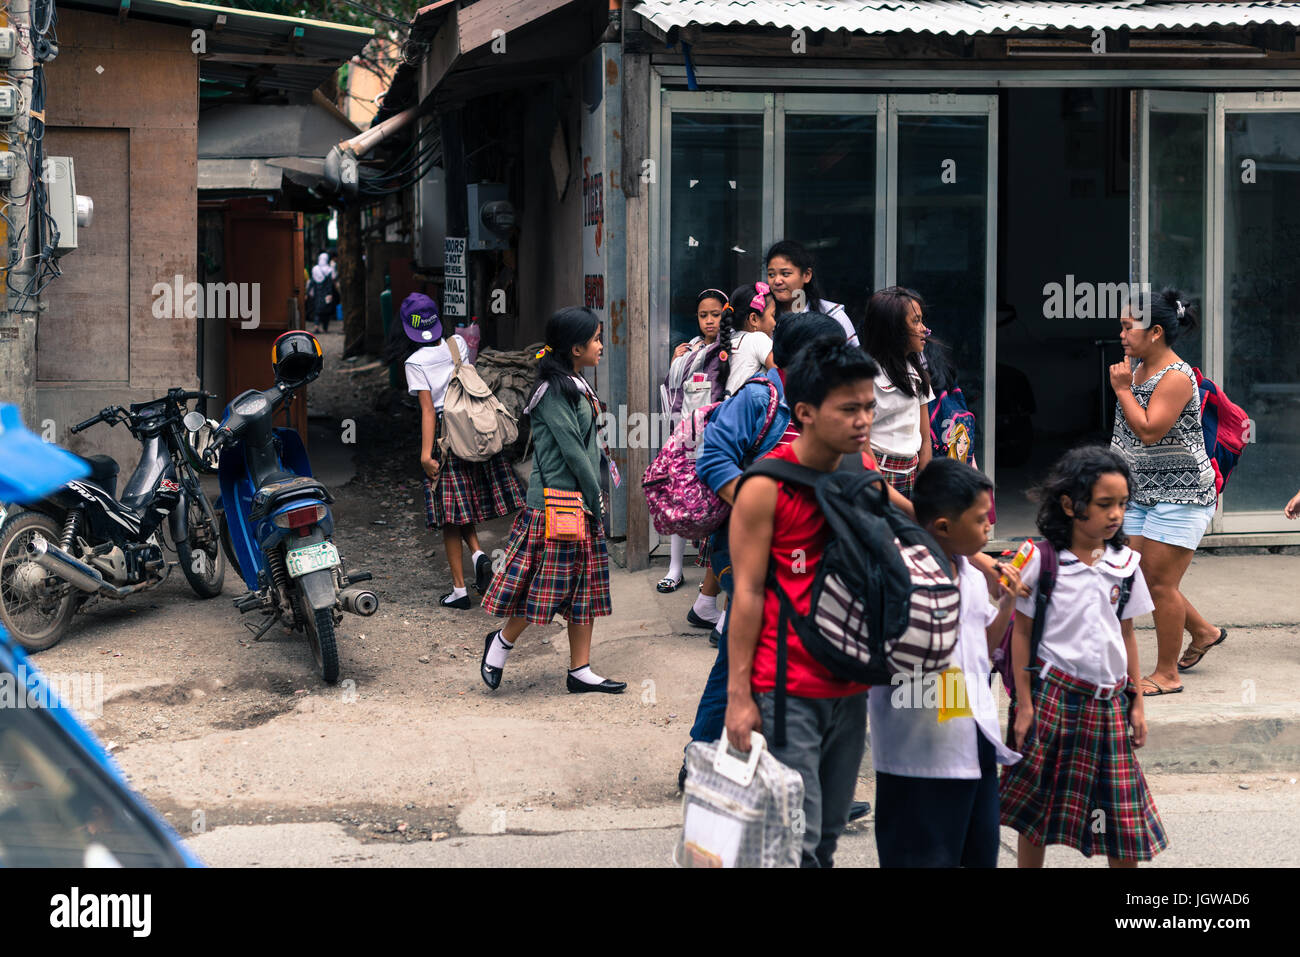 Filipino children coming back from school, dressed with skirts in Boracay, Philippines. - Stock Image